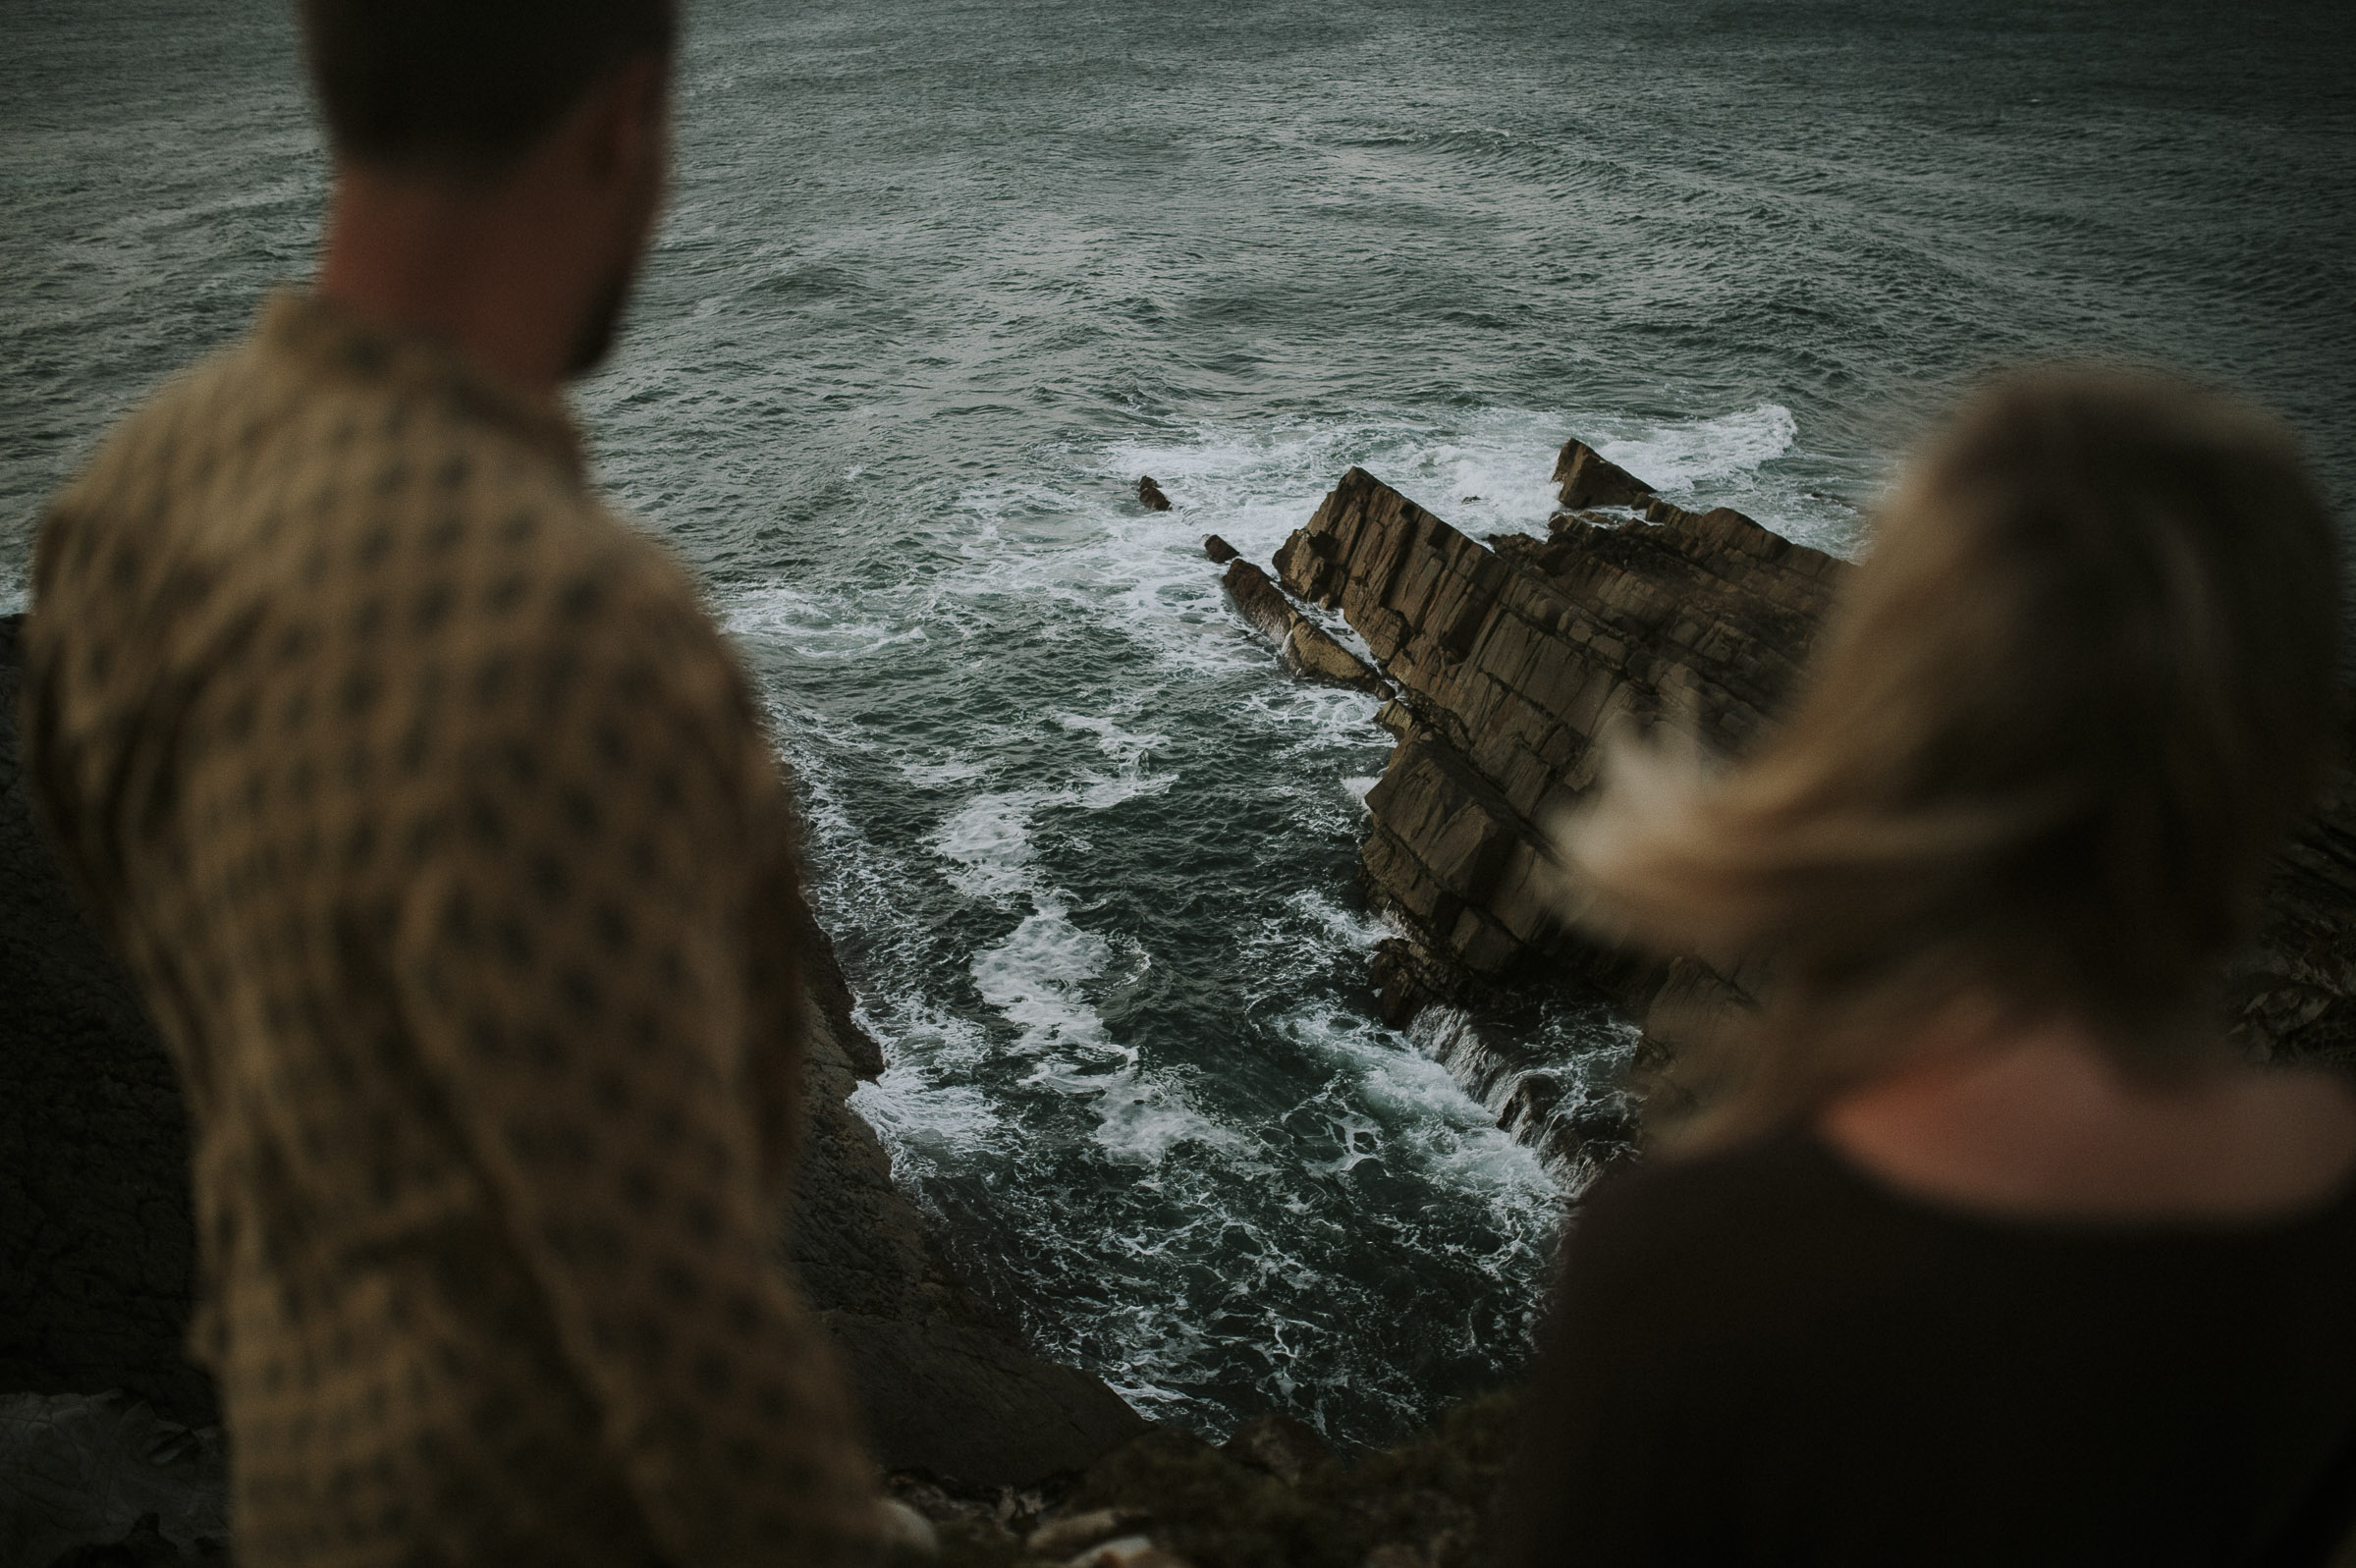 Jess_Nick_Treachary_Engagement_Shoot_Blog-9.jpg